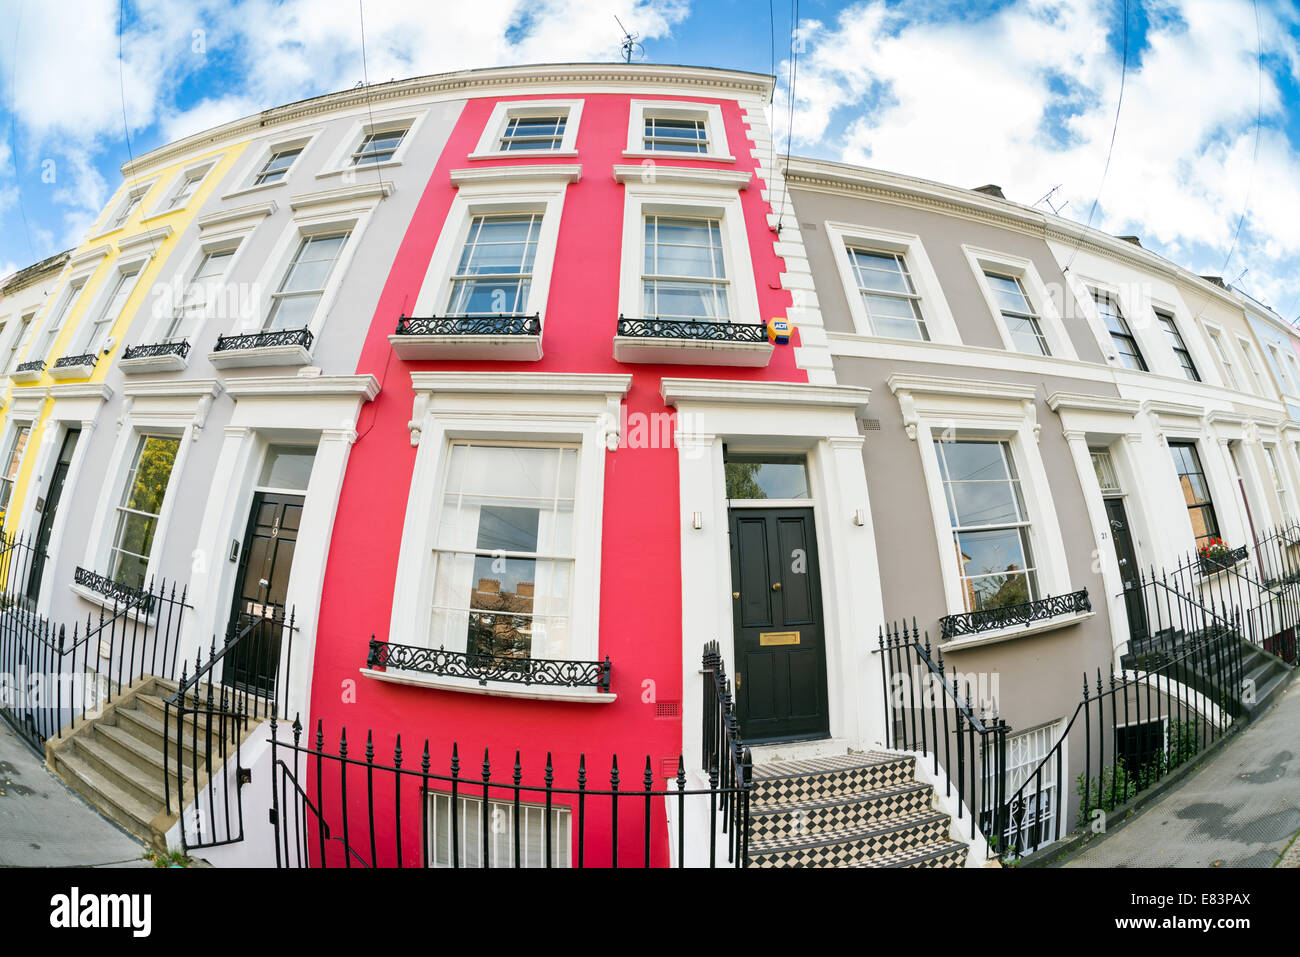 Row of terraced houses in Notting Hill, London, England, UK - Stock Image